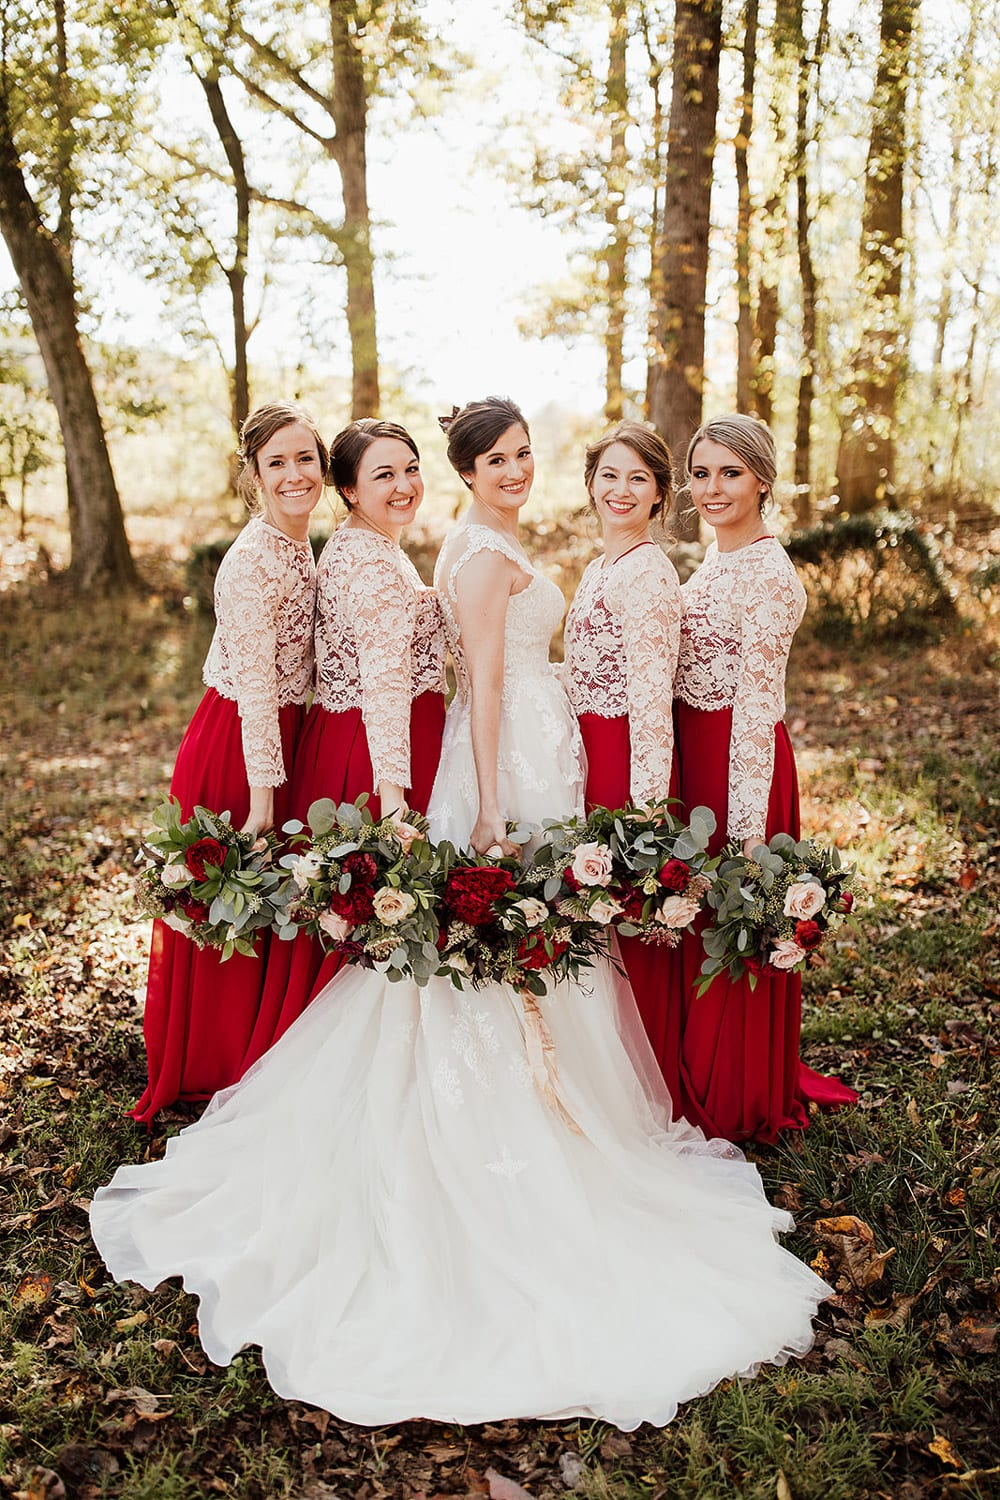 Bride and bridesmaids pose with flowers in forest